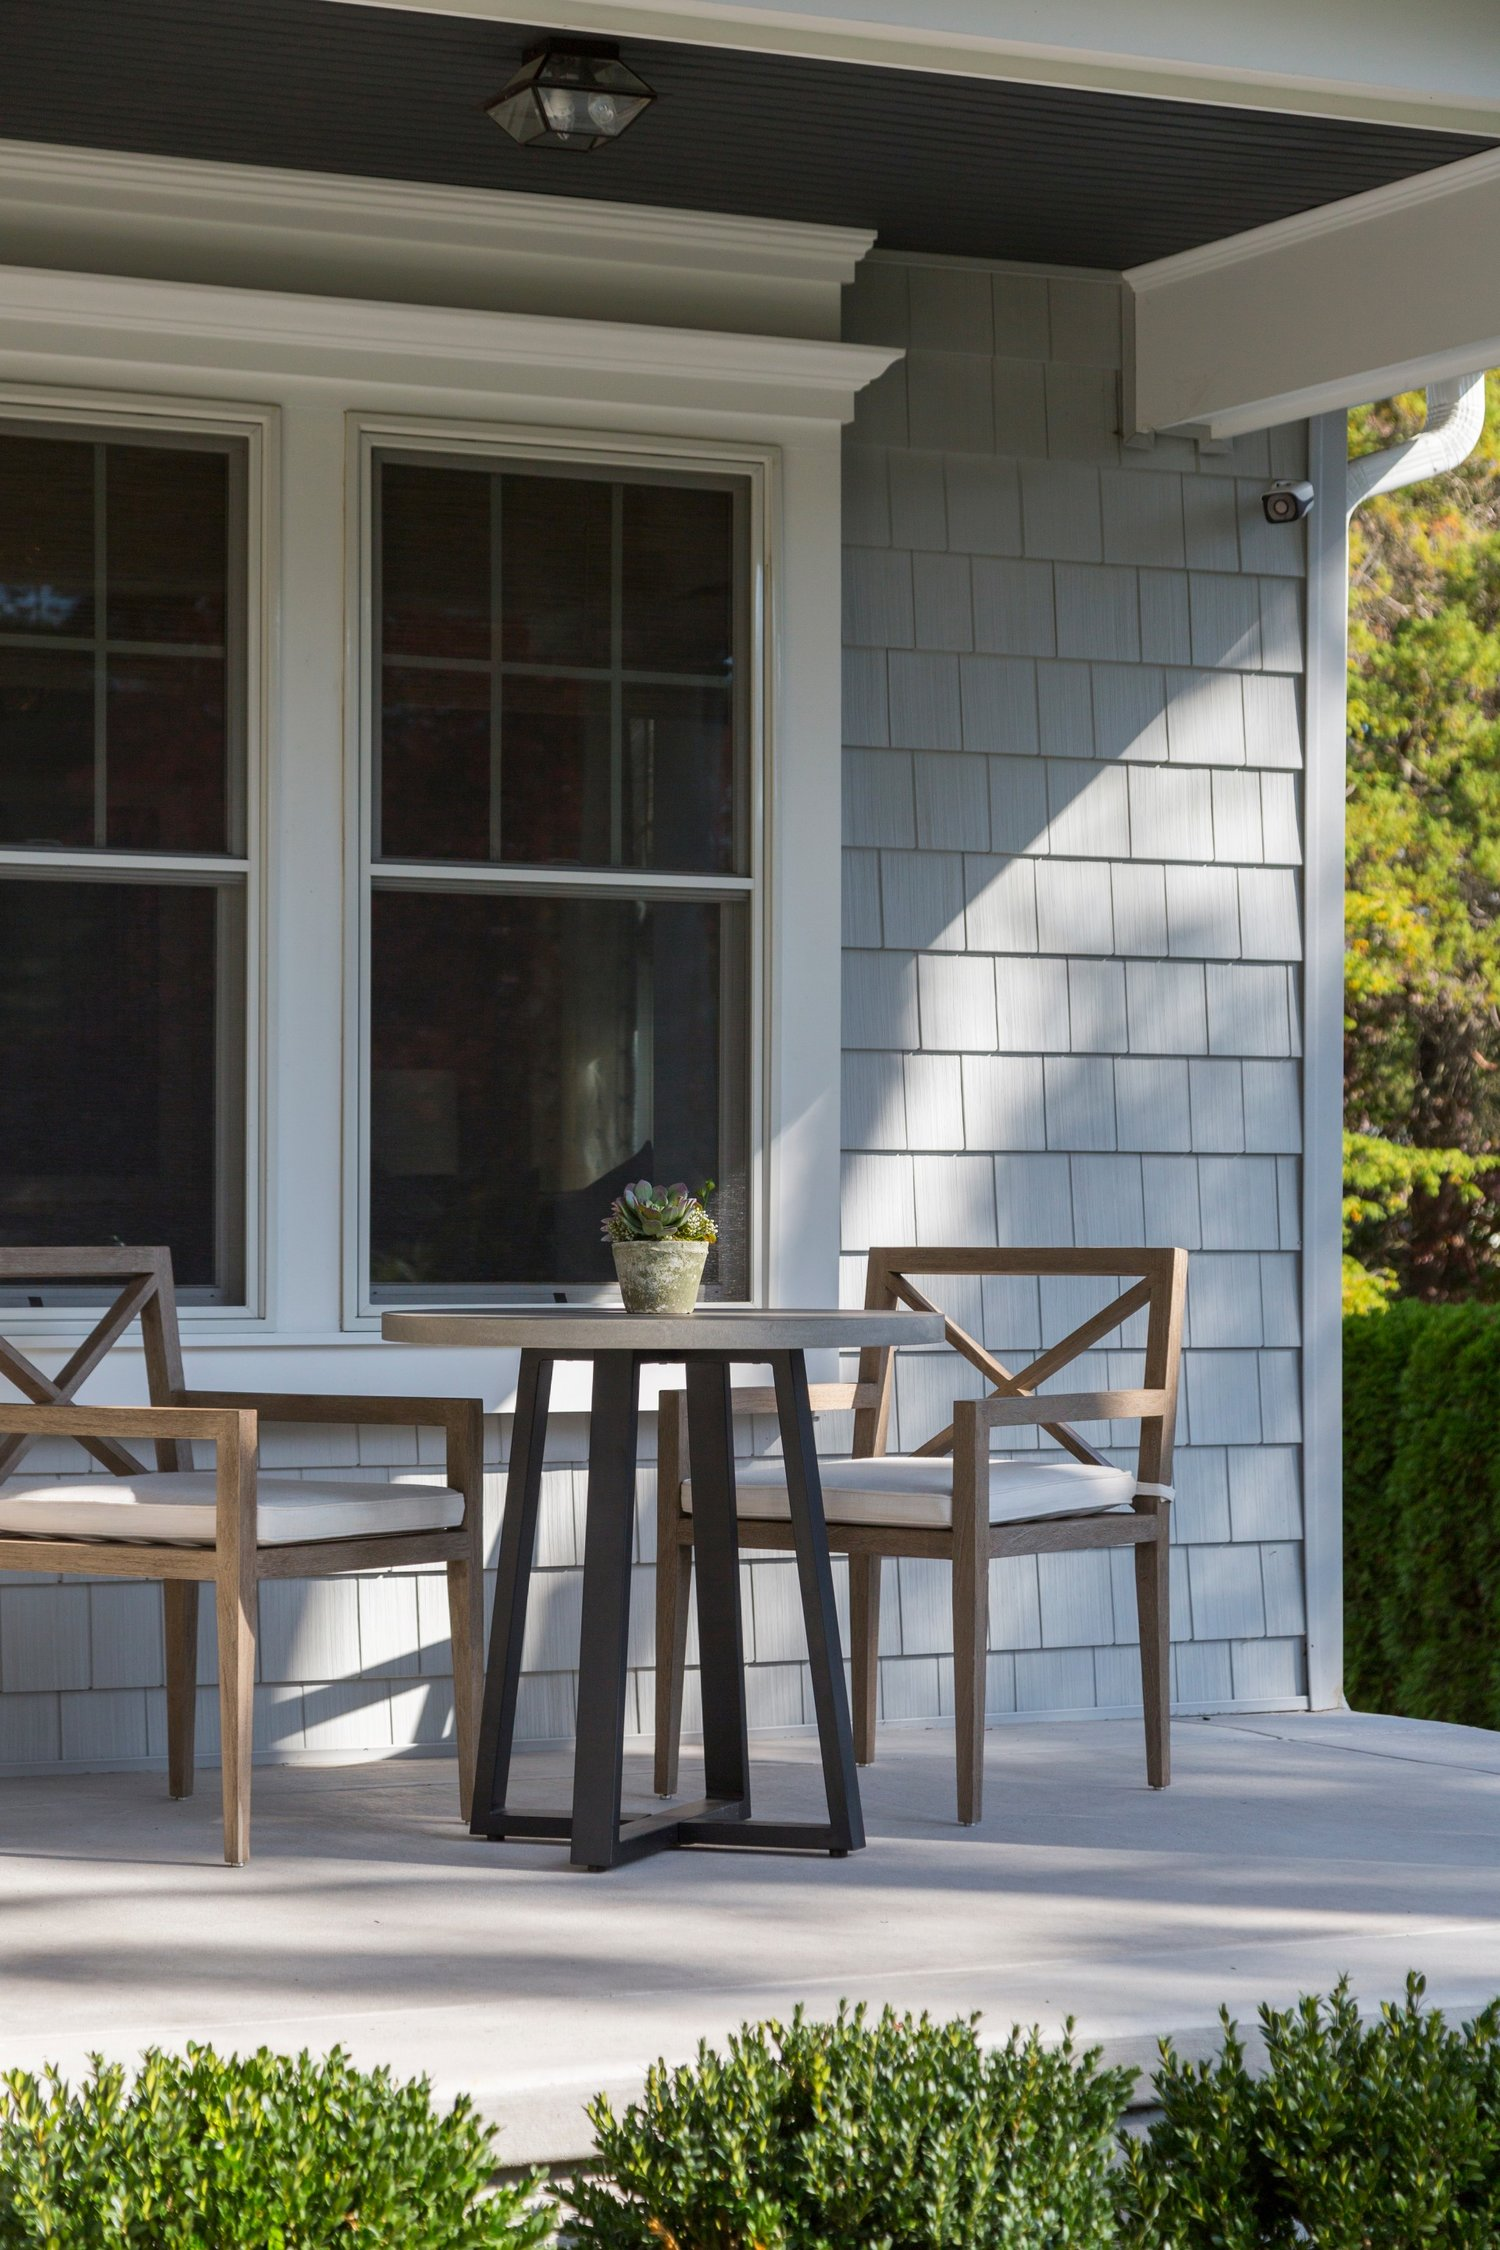 High table with two chairs in back porch